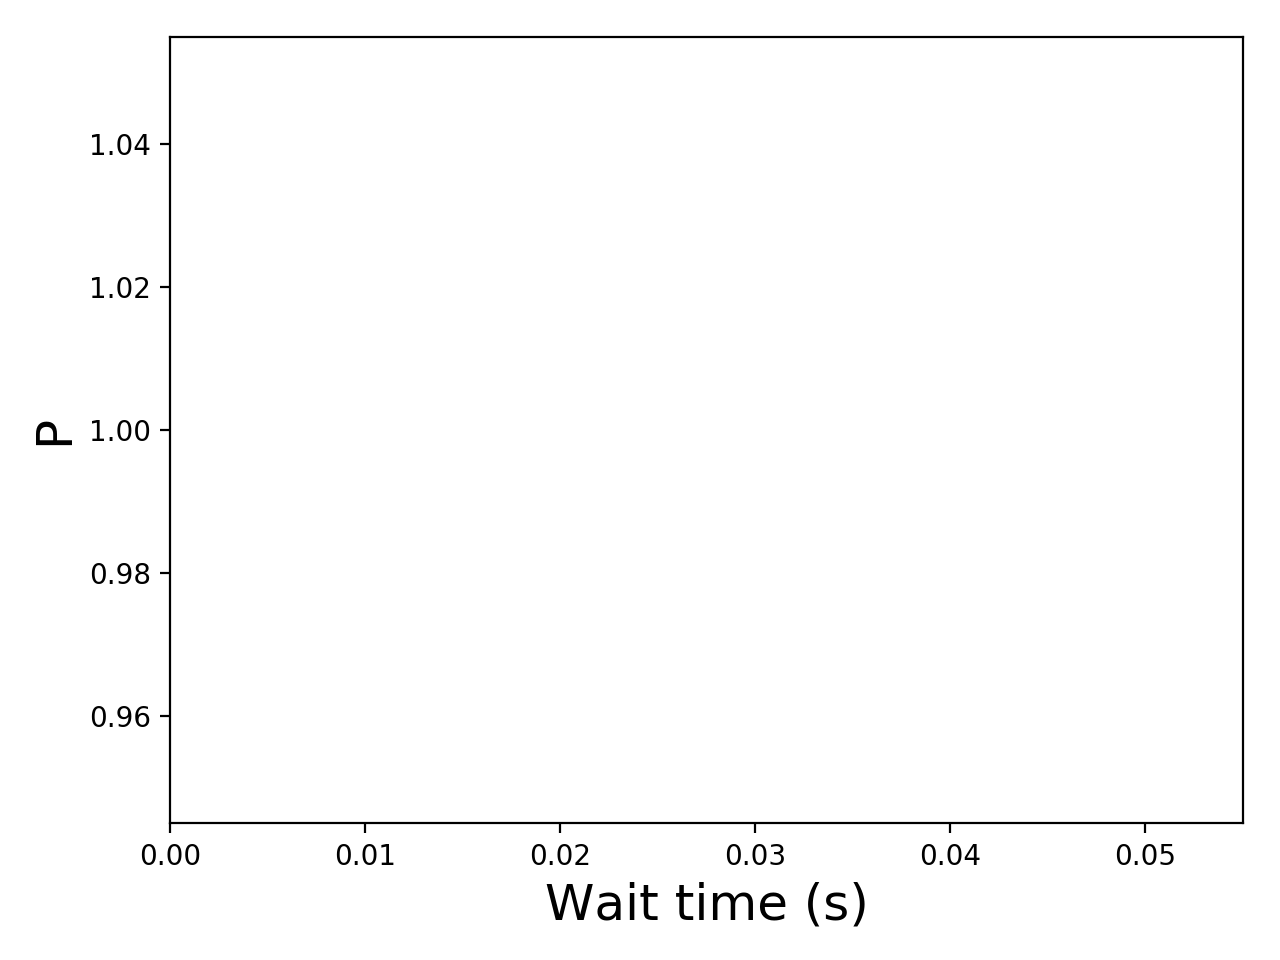 Task wait time CDF graph for the askalon-new_ee8 trace.